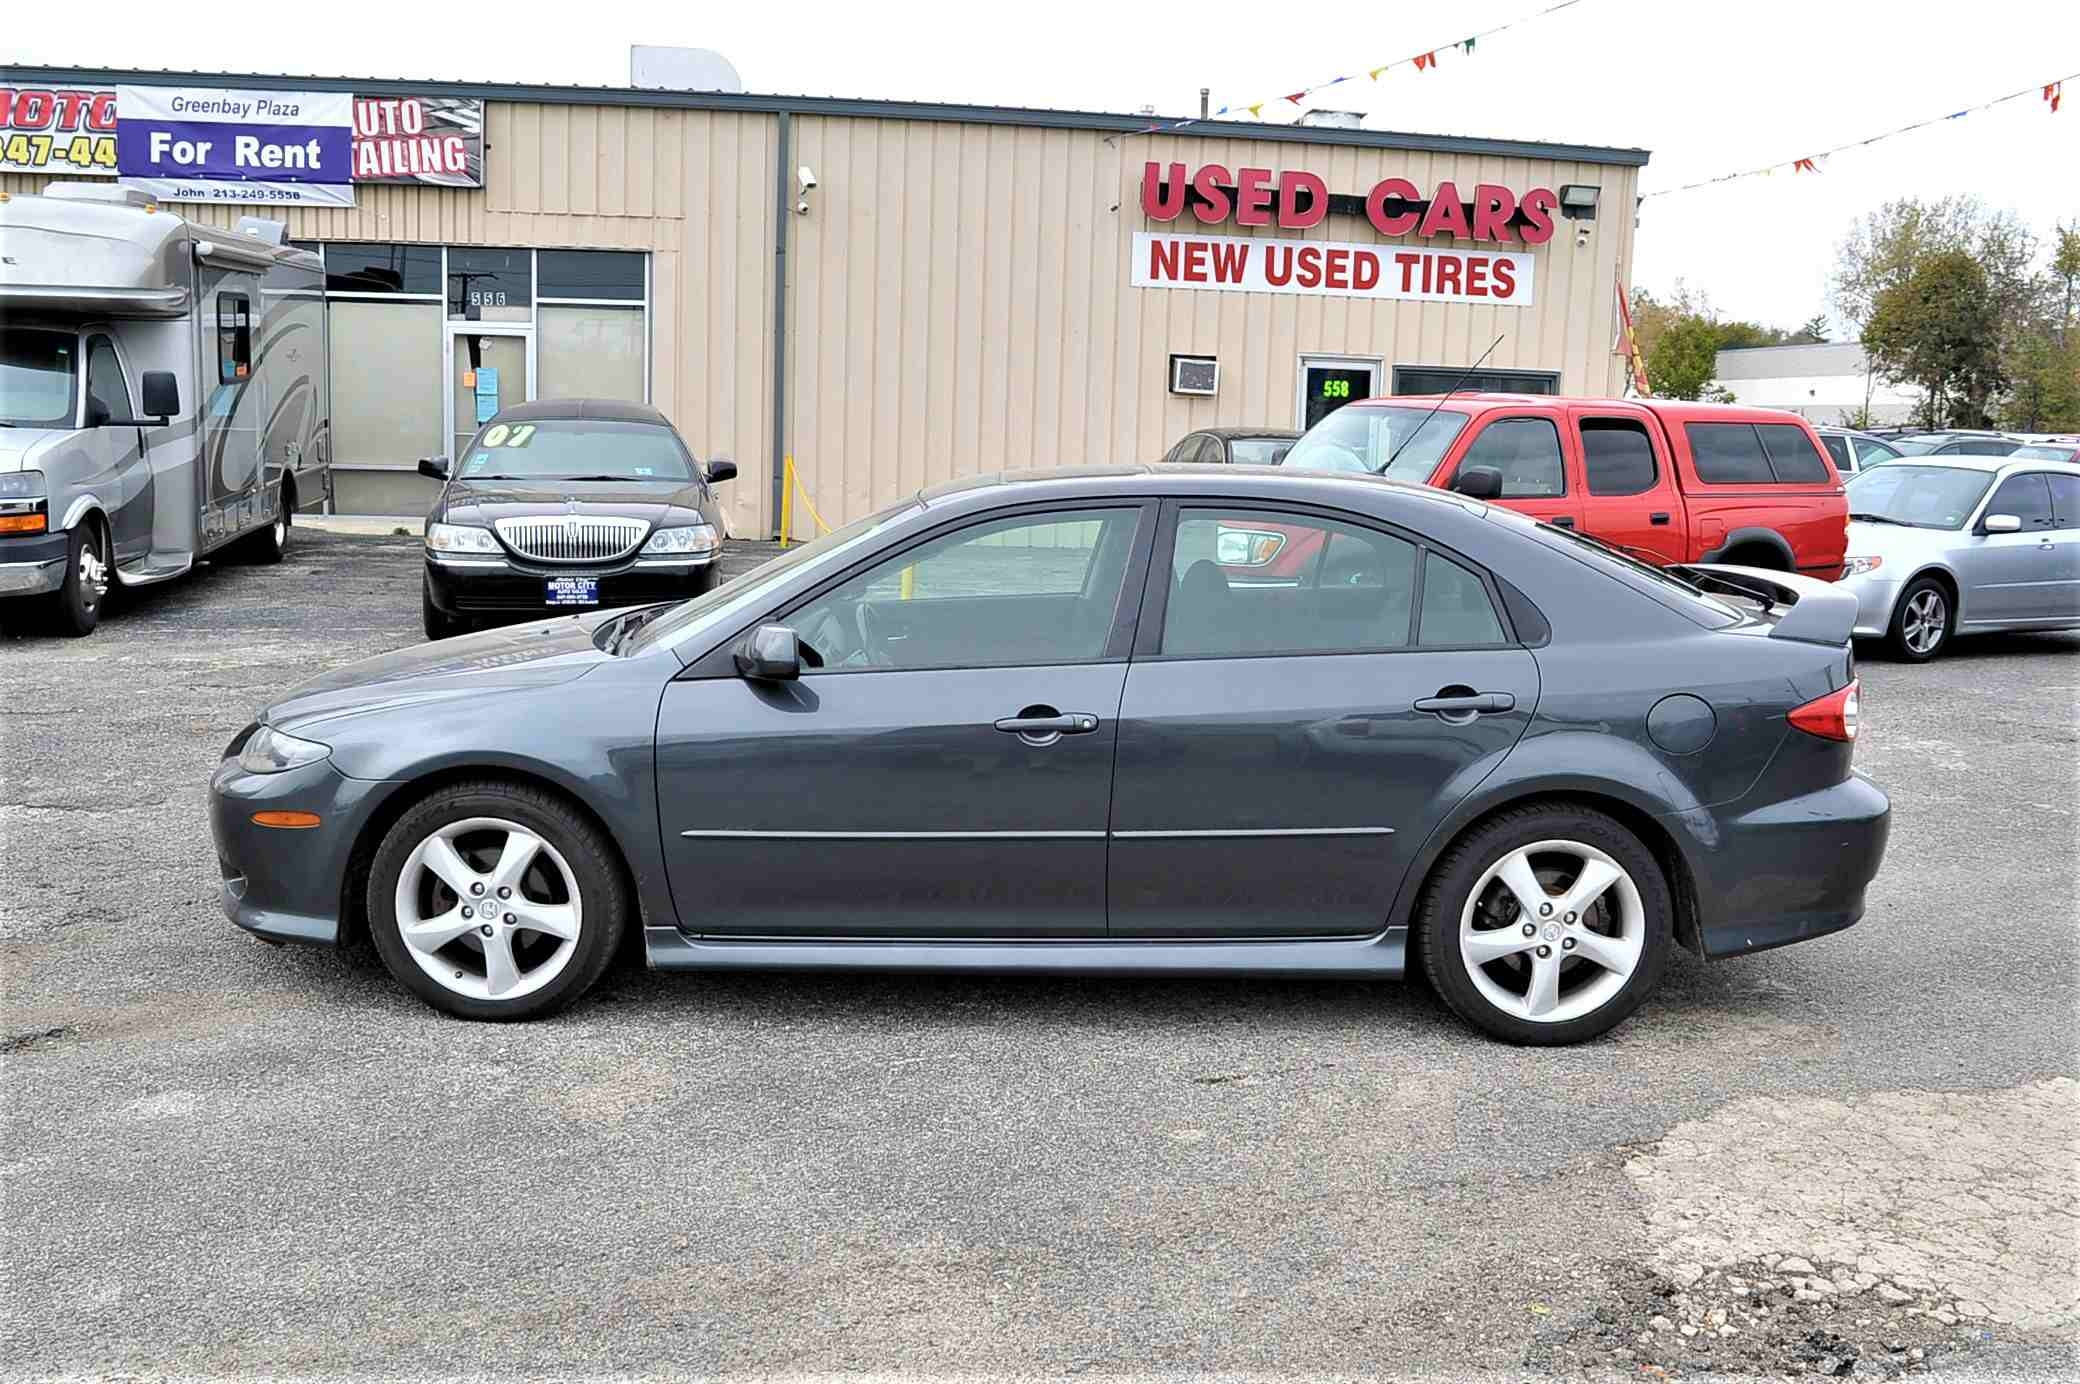 2004 Mazda 6 Gray Sedan Sale Used Car Sale Bannockburn Barrington Beach Park